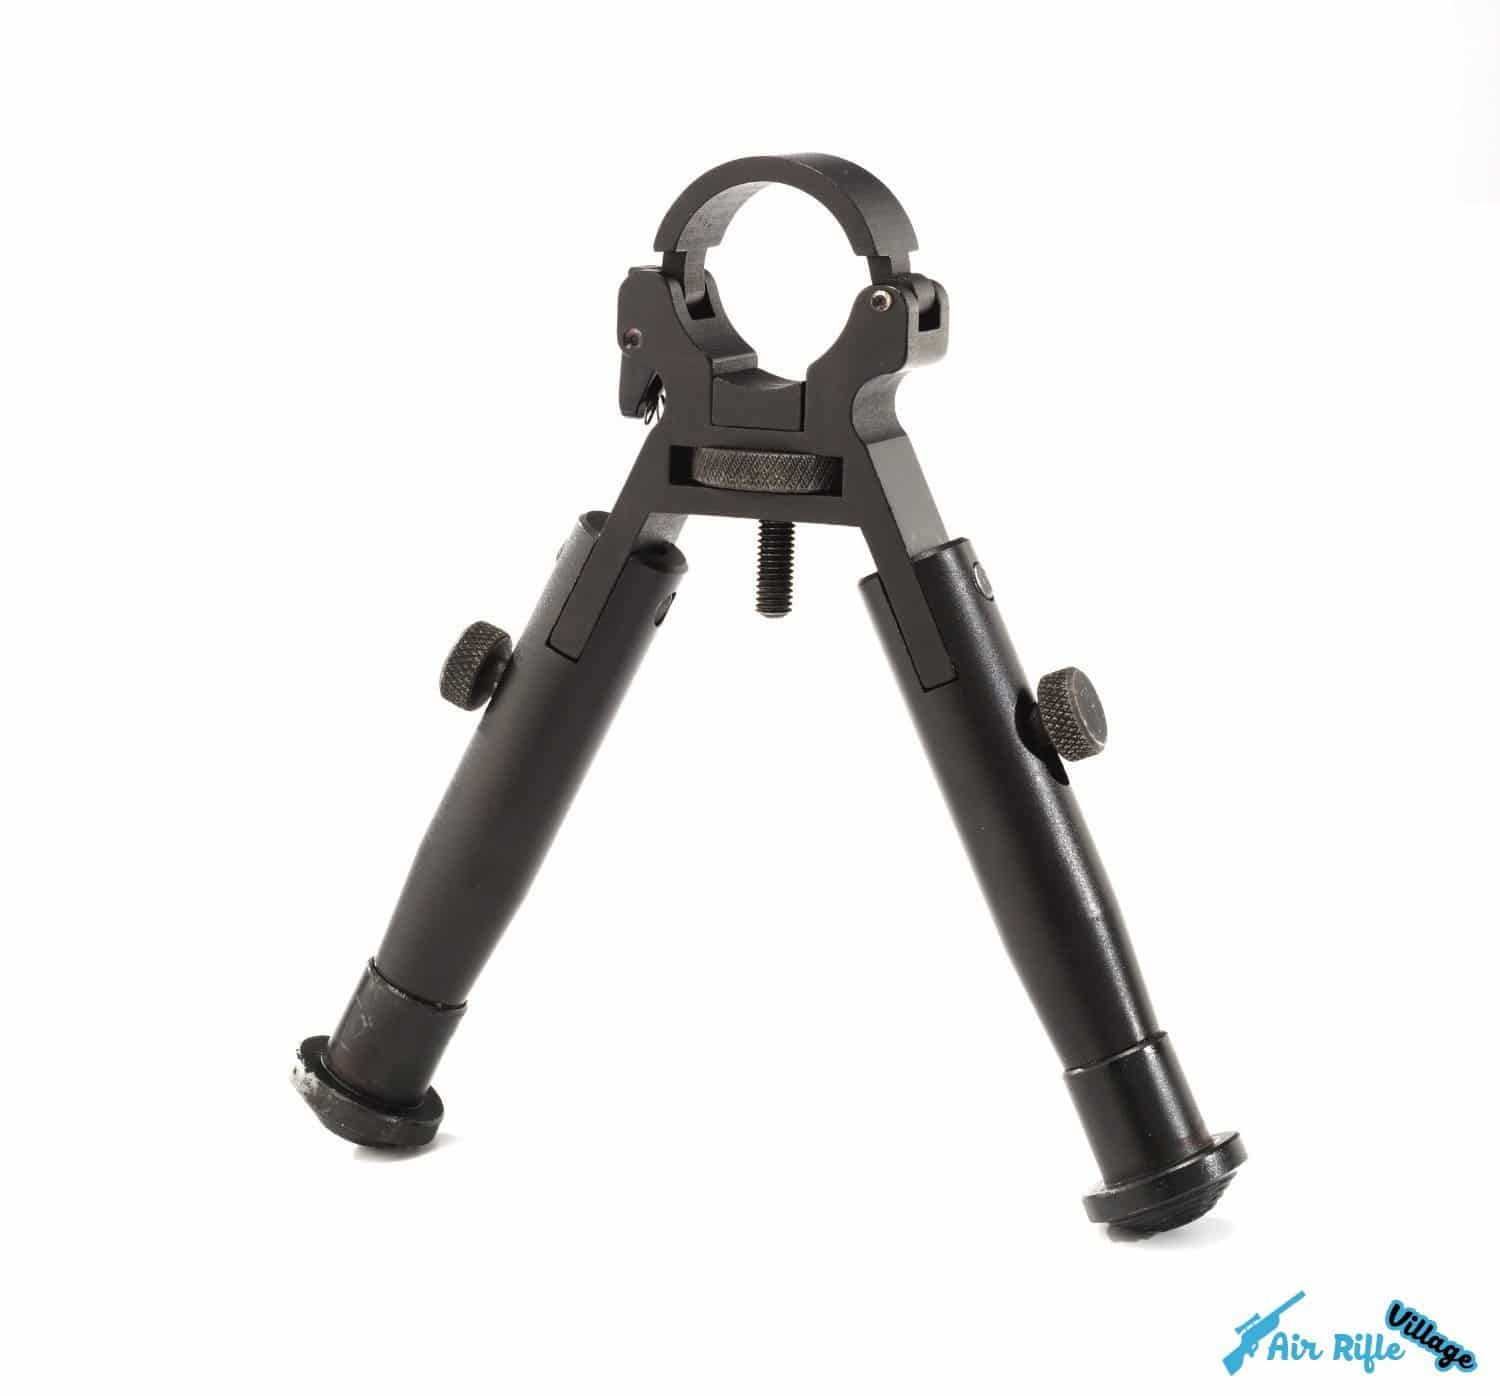 JINSE Tactical Bipod for Air Rifle